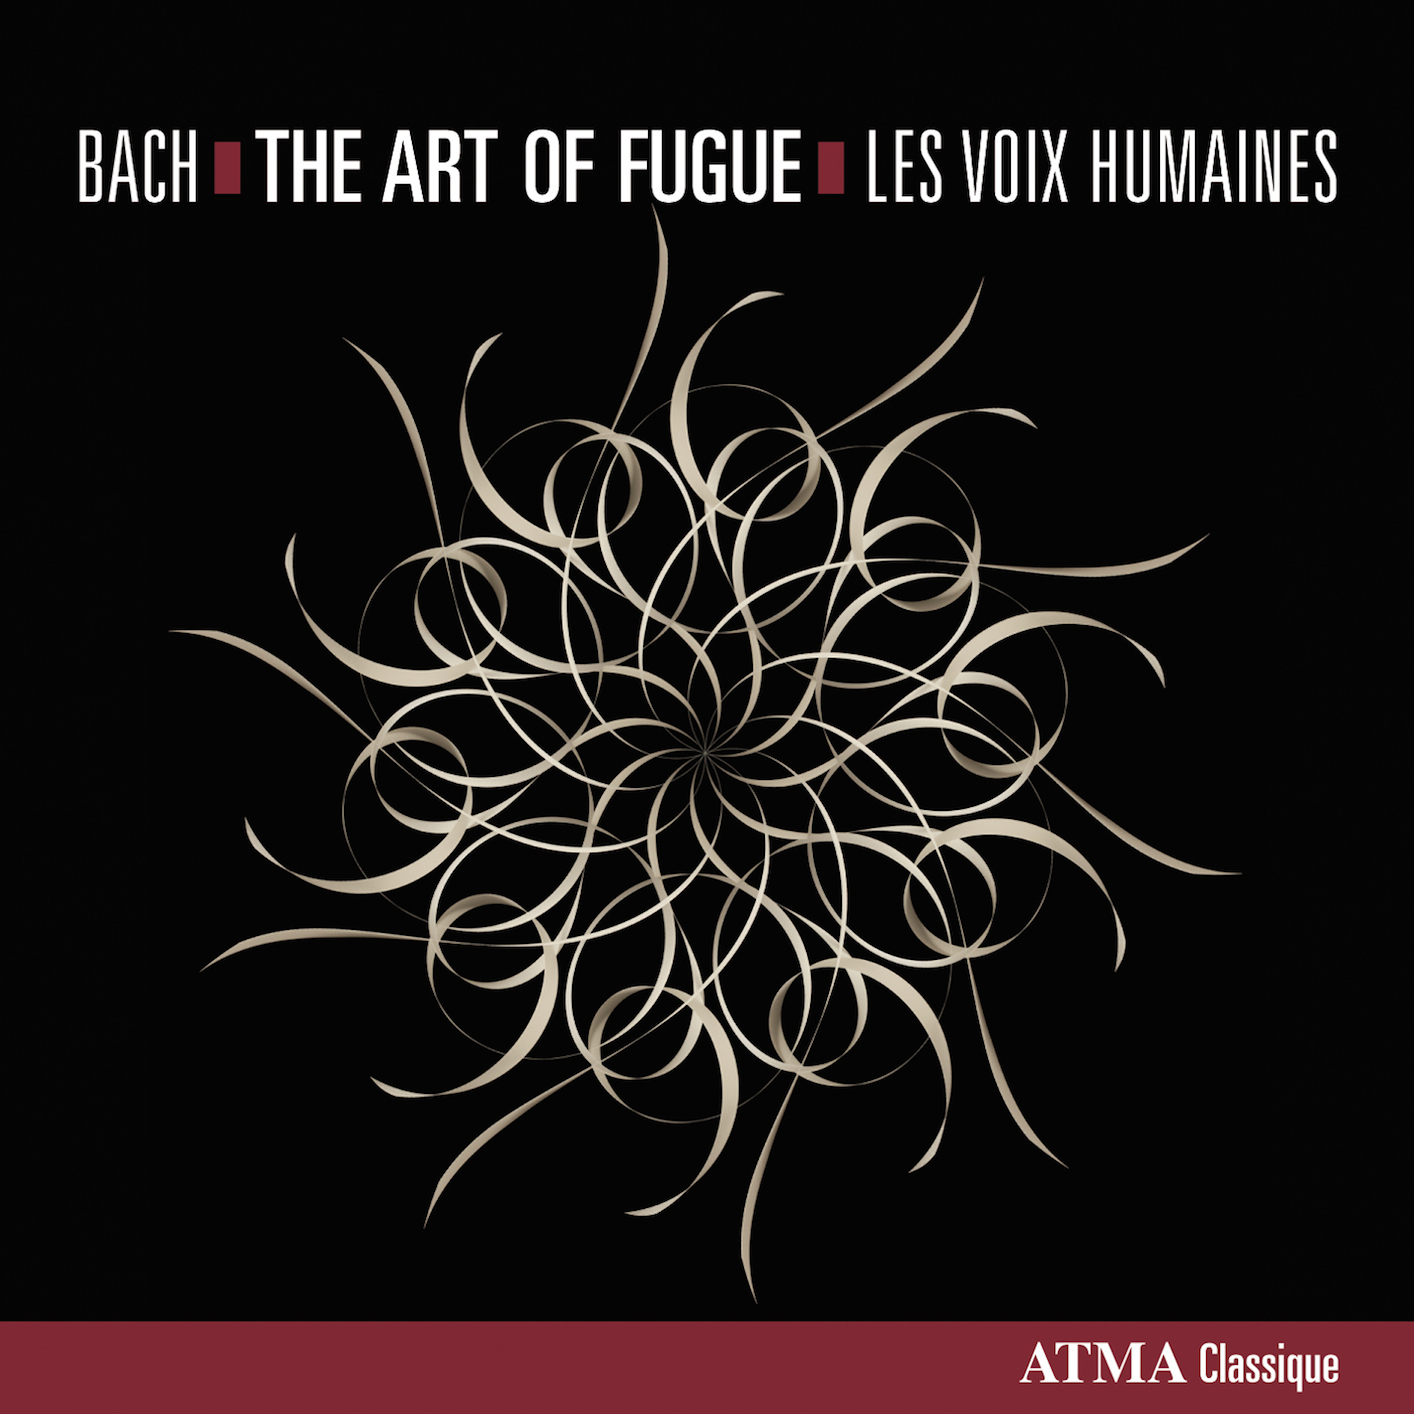 Die Kunst Bach Die Kunst Der Fuge The Art Of Fugue